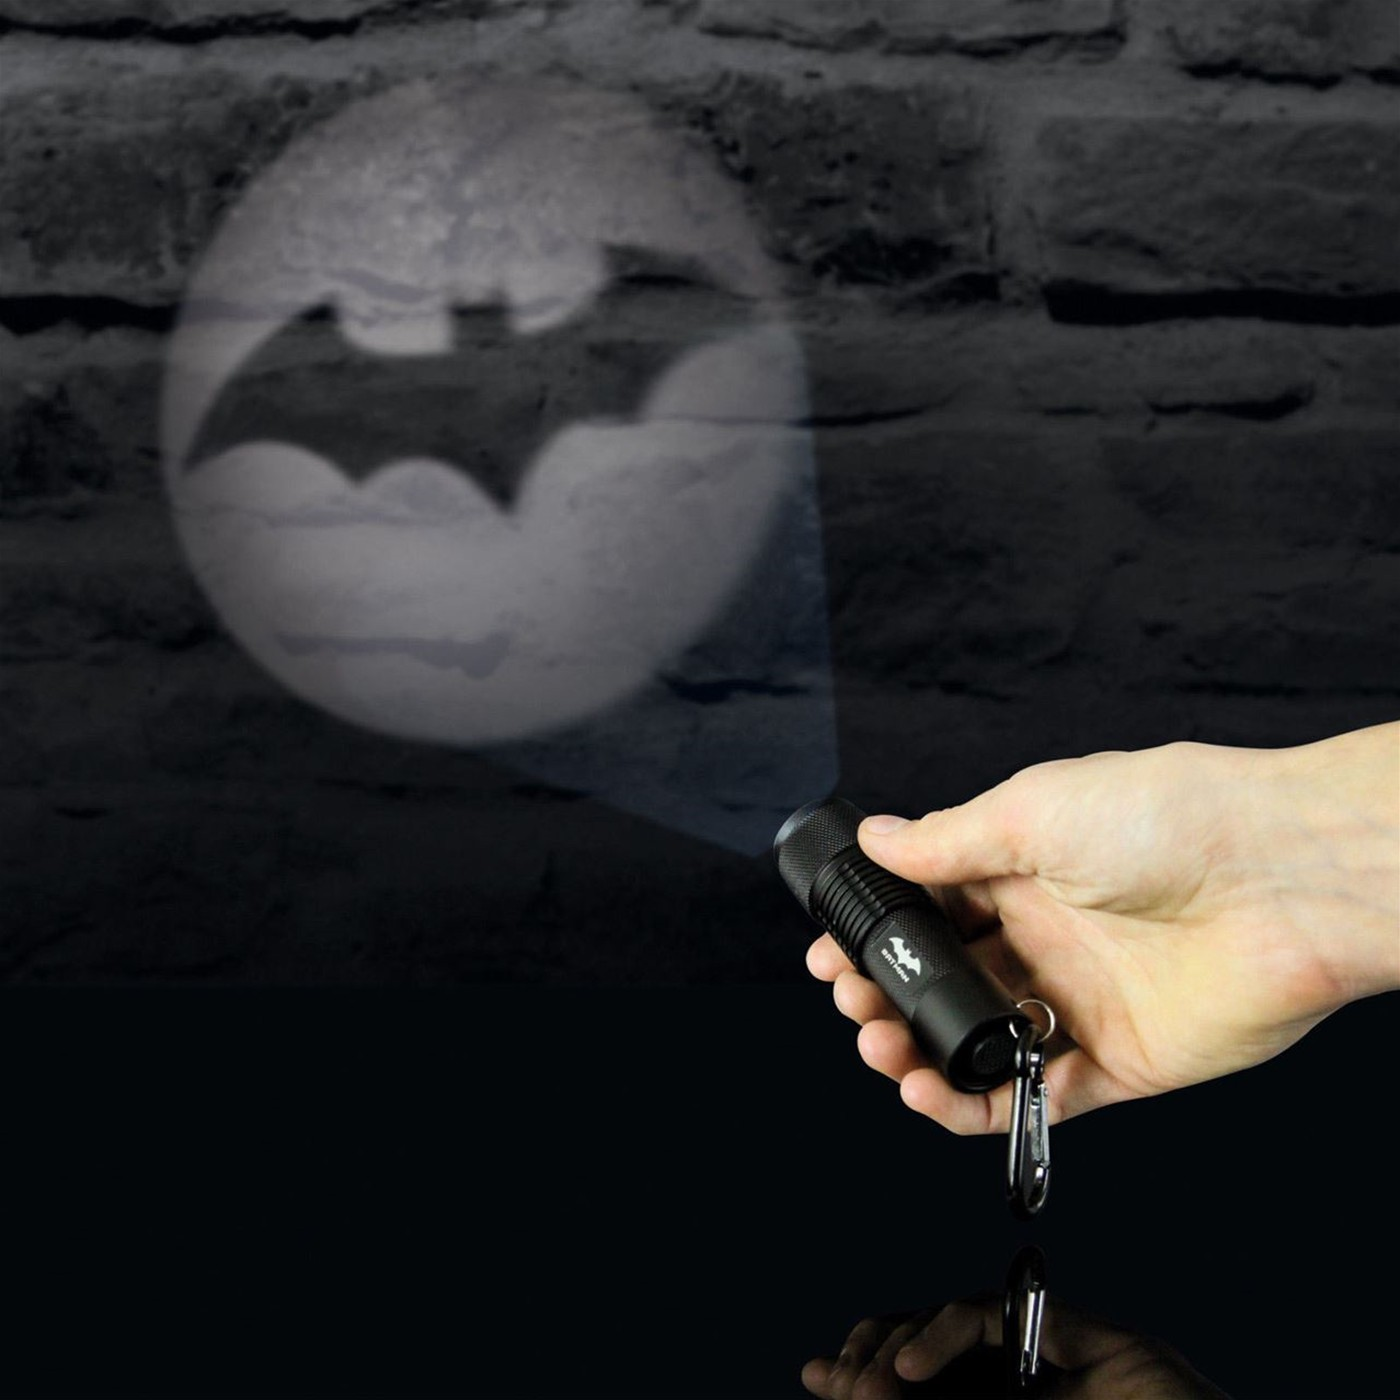 Batman Handheld Projection Torch V2